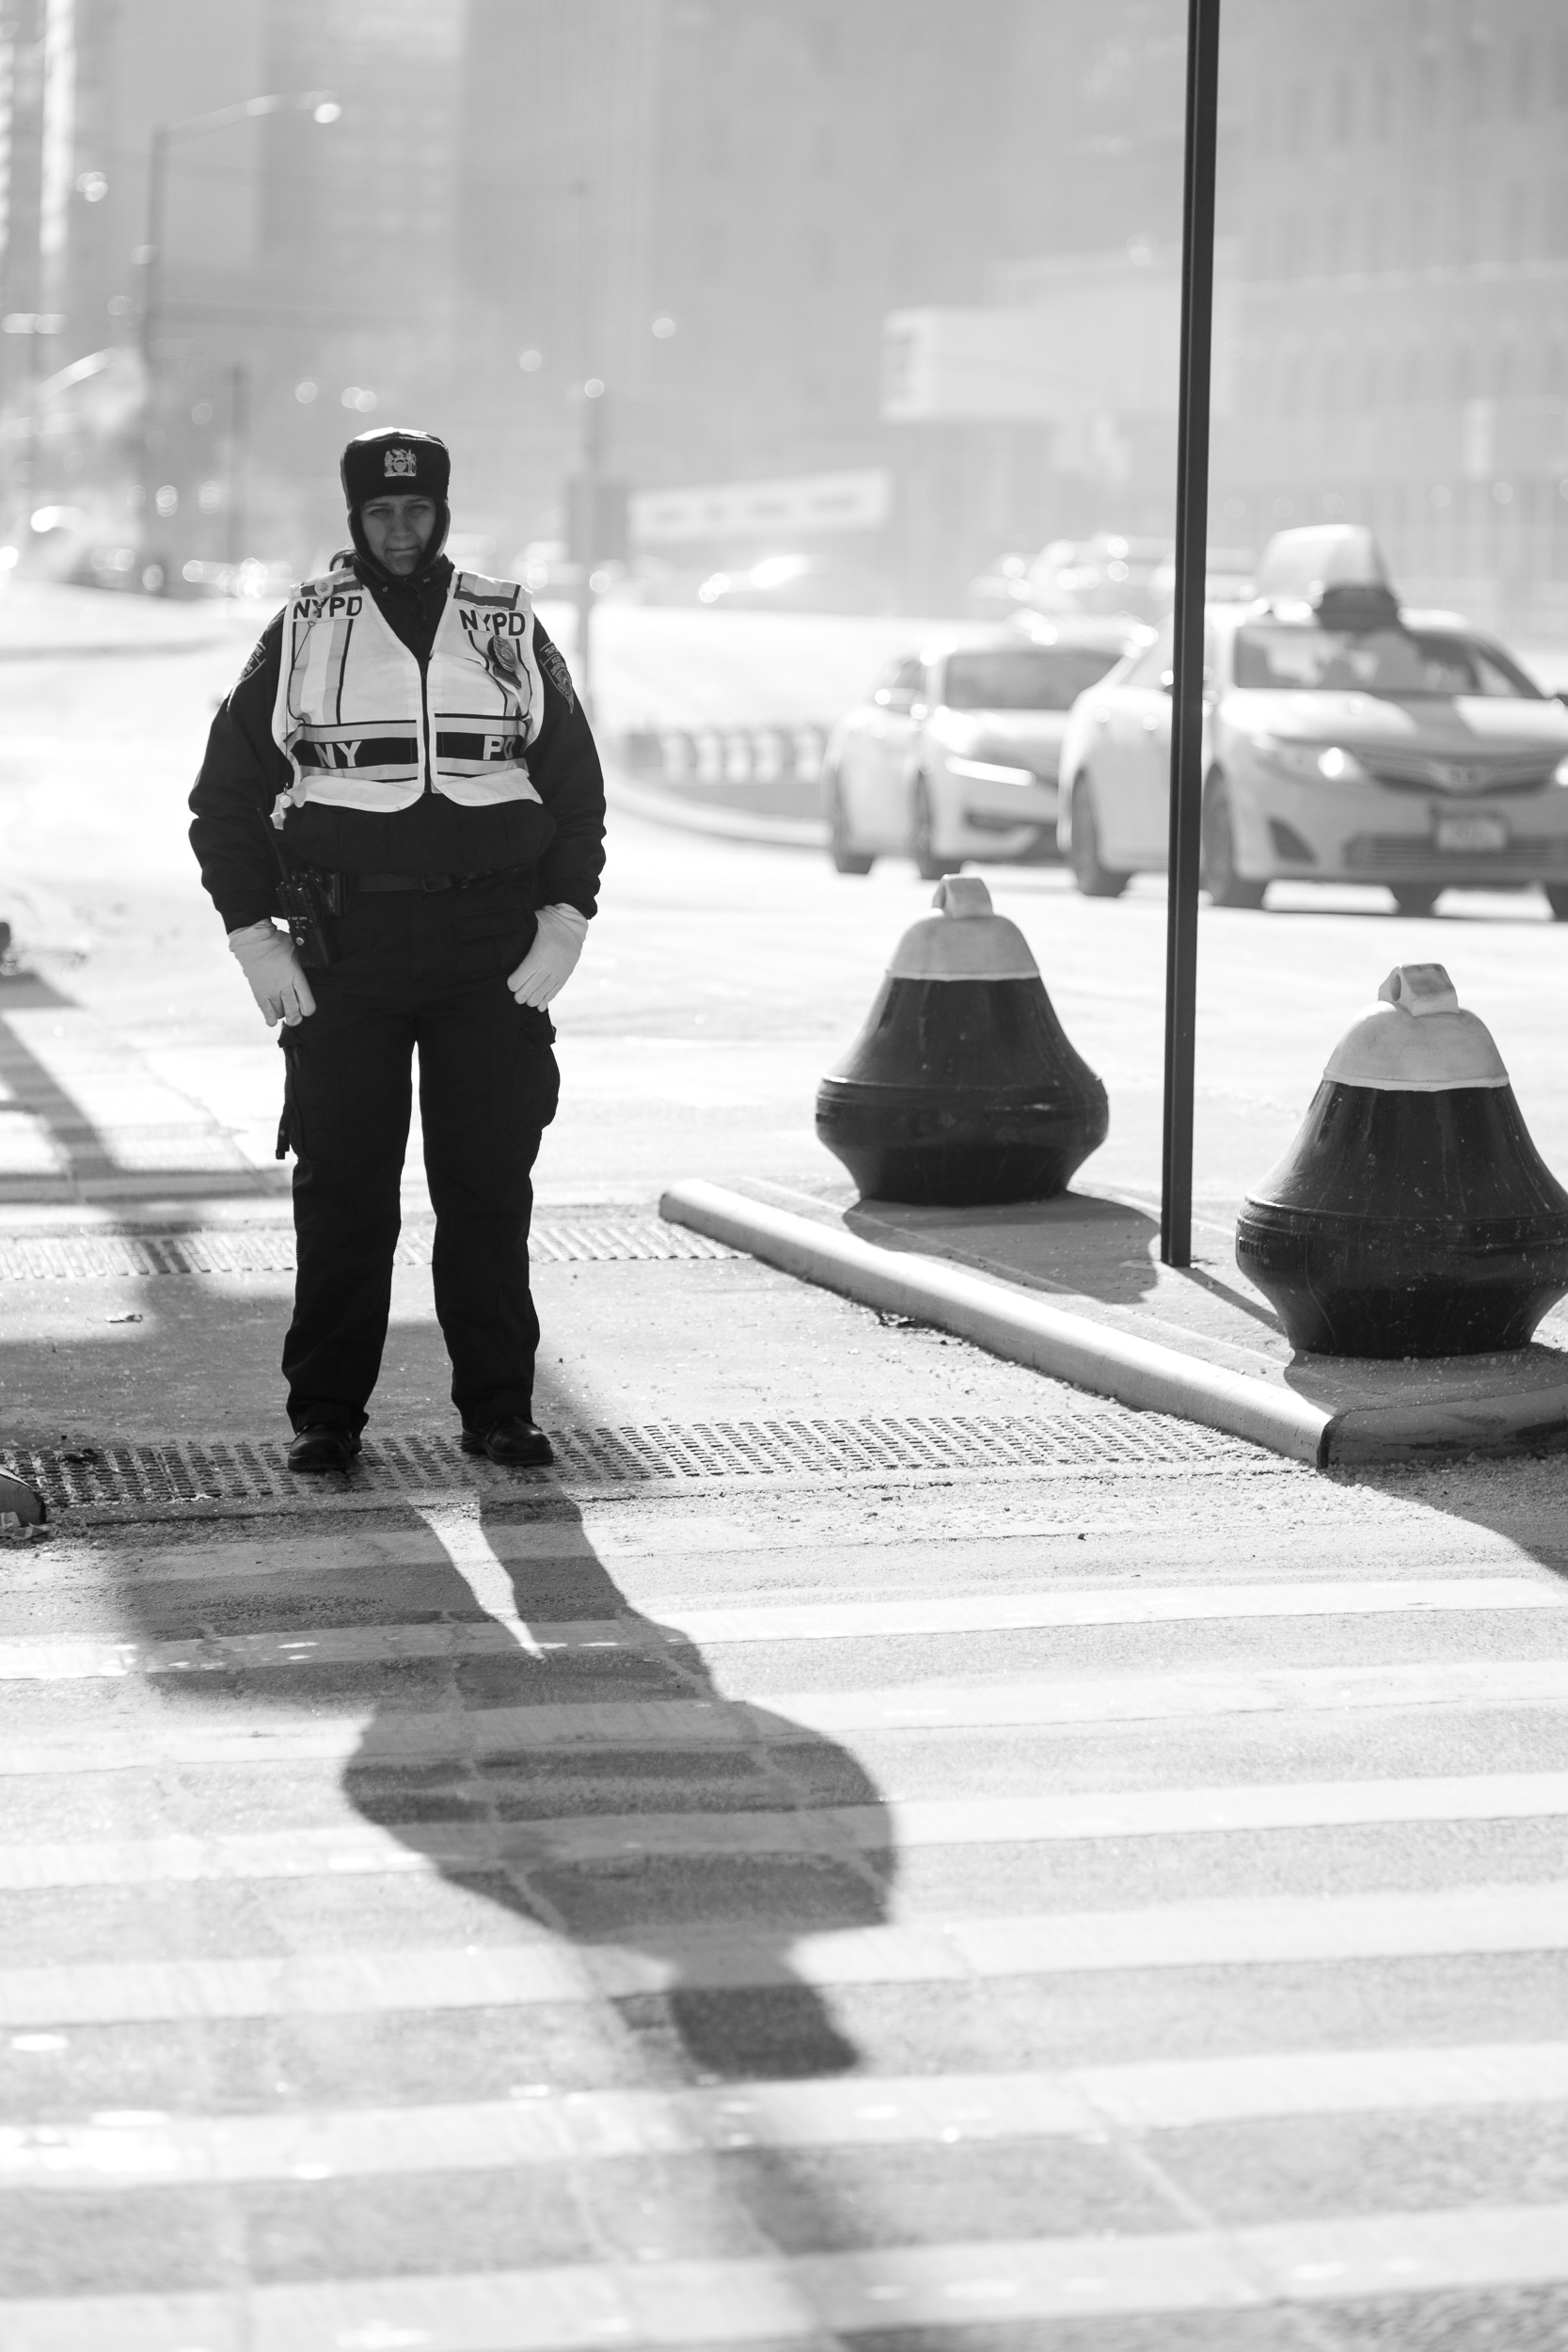 Patience. A police officer waits patiently for the light to chance before she begins directing more traffic over the intersection. The harsh light and strong shadows gave this scene the sparkle I was looking for. Leica M10 with 90mm Summicron f/2.